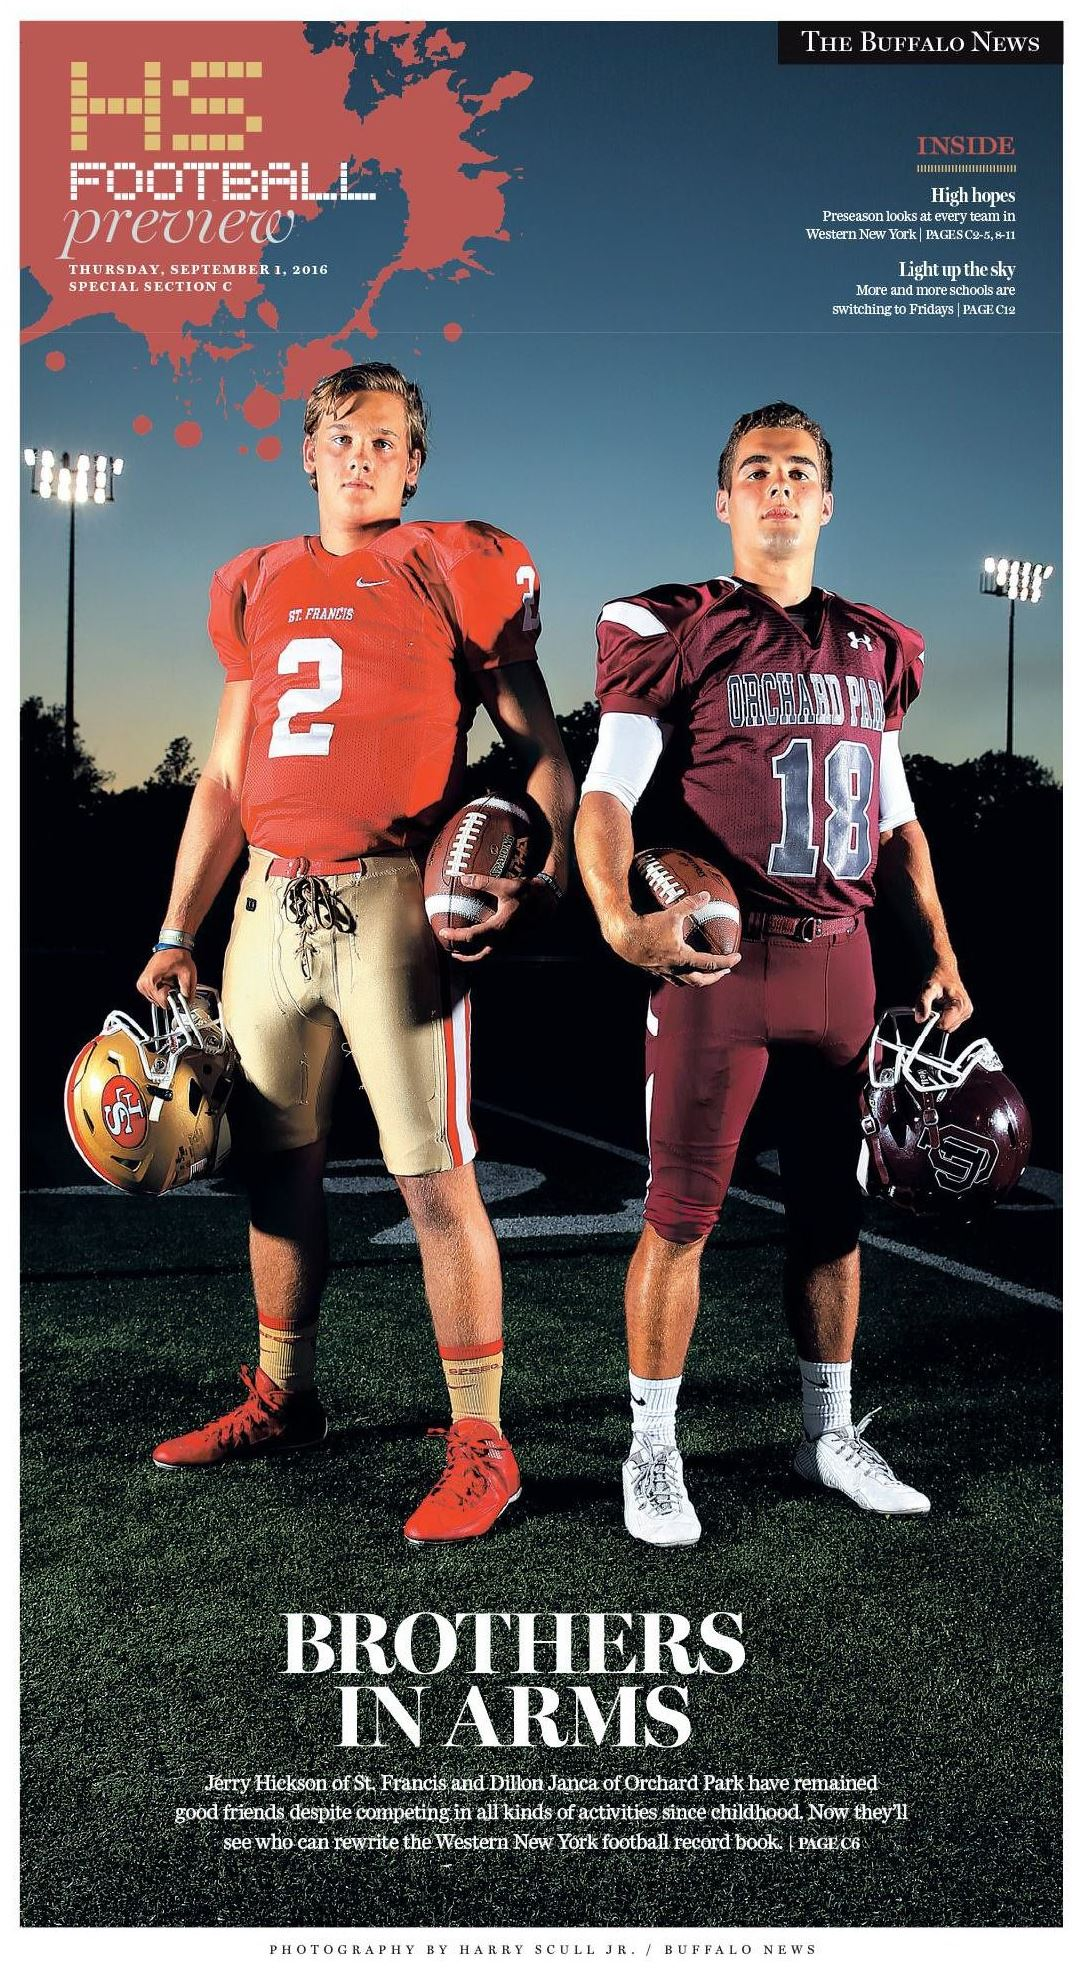 The cover of our 2015 high school football preview. Design by Jason Baum. Photography by Harry Scull Jr.